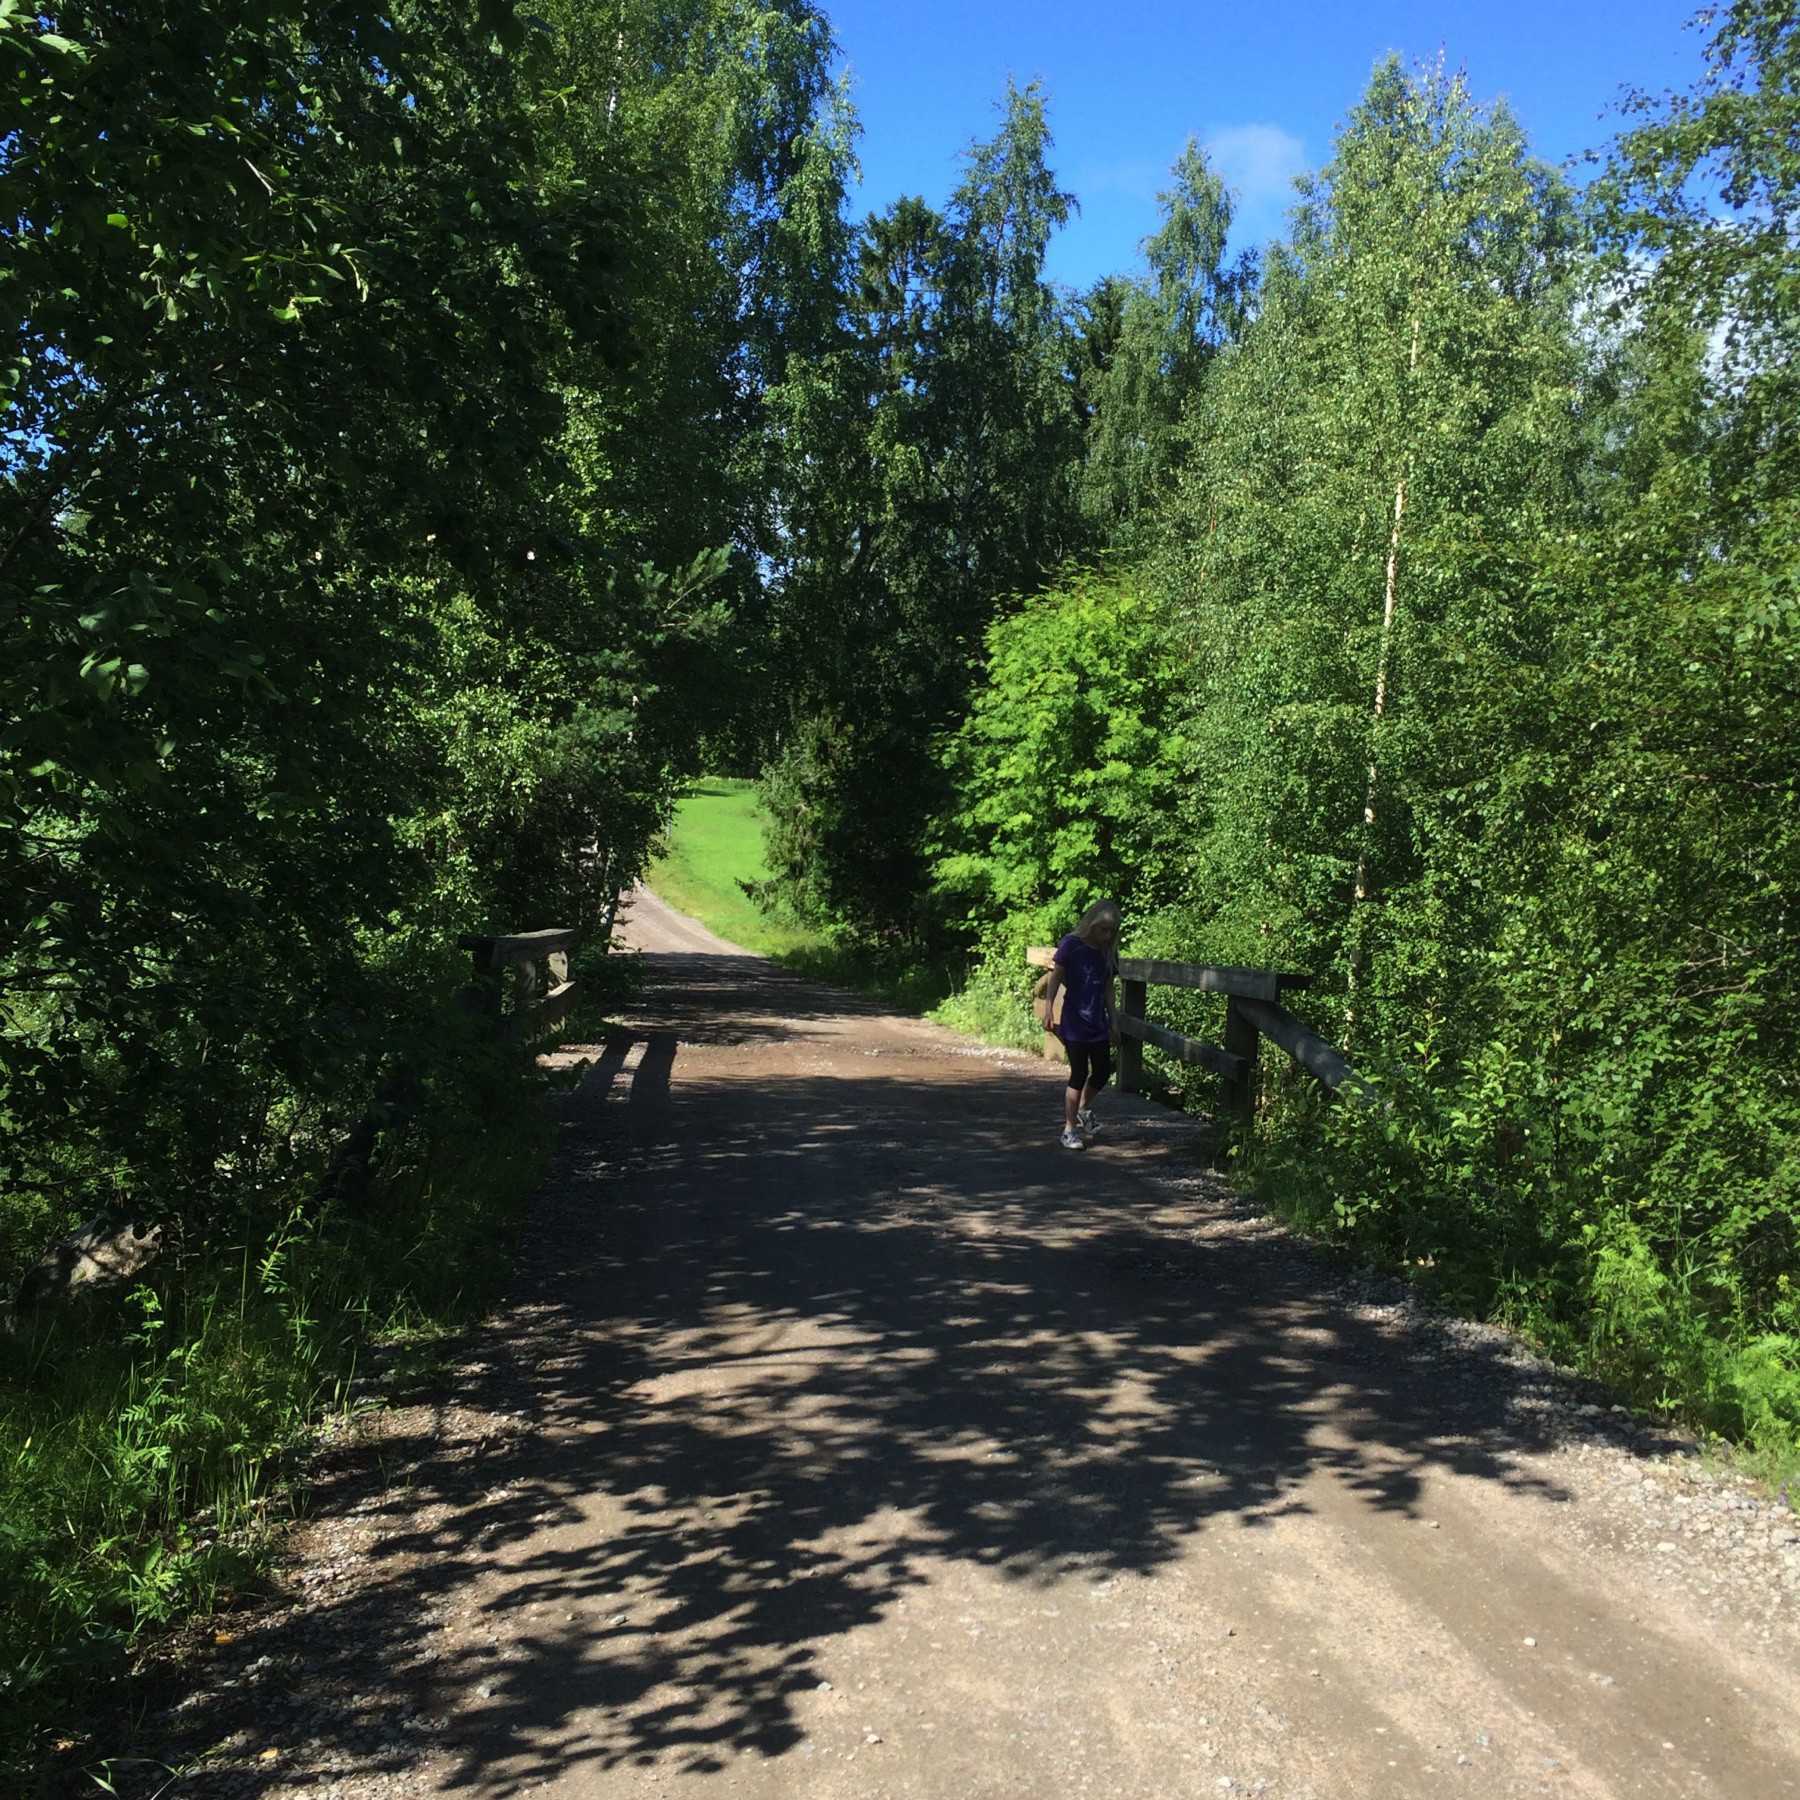 Summer photo of a dirt road, small wooden bridge and plenty of trees